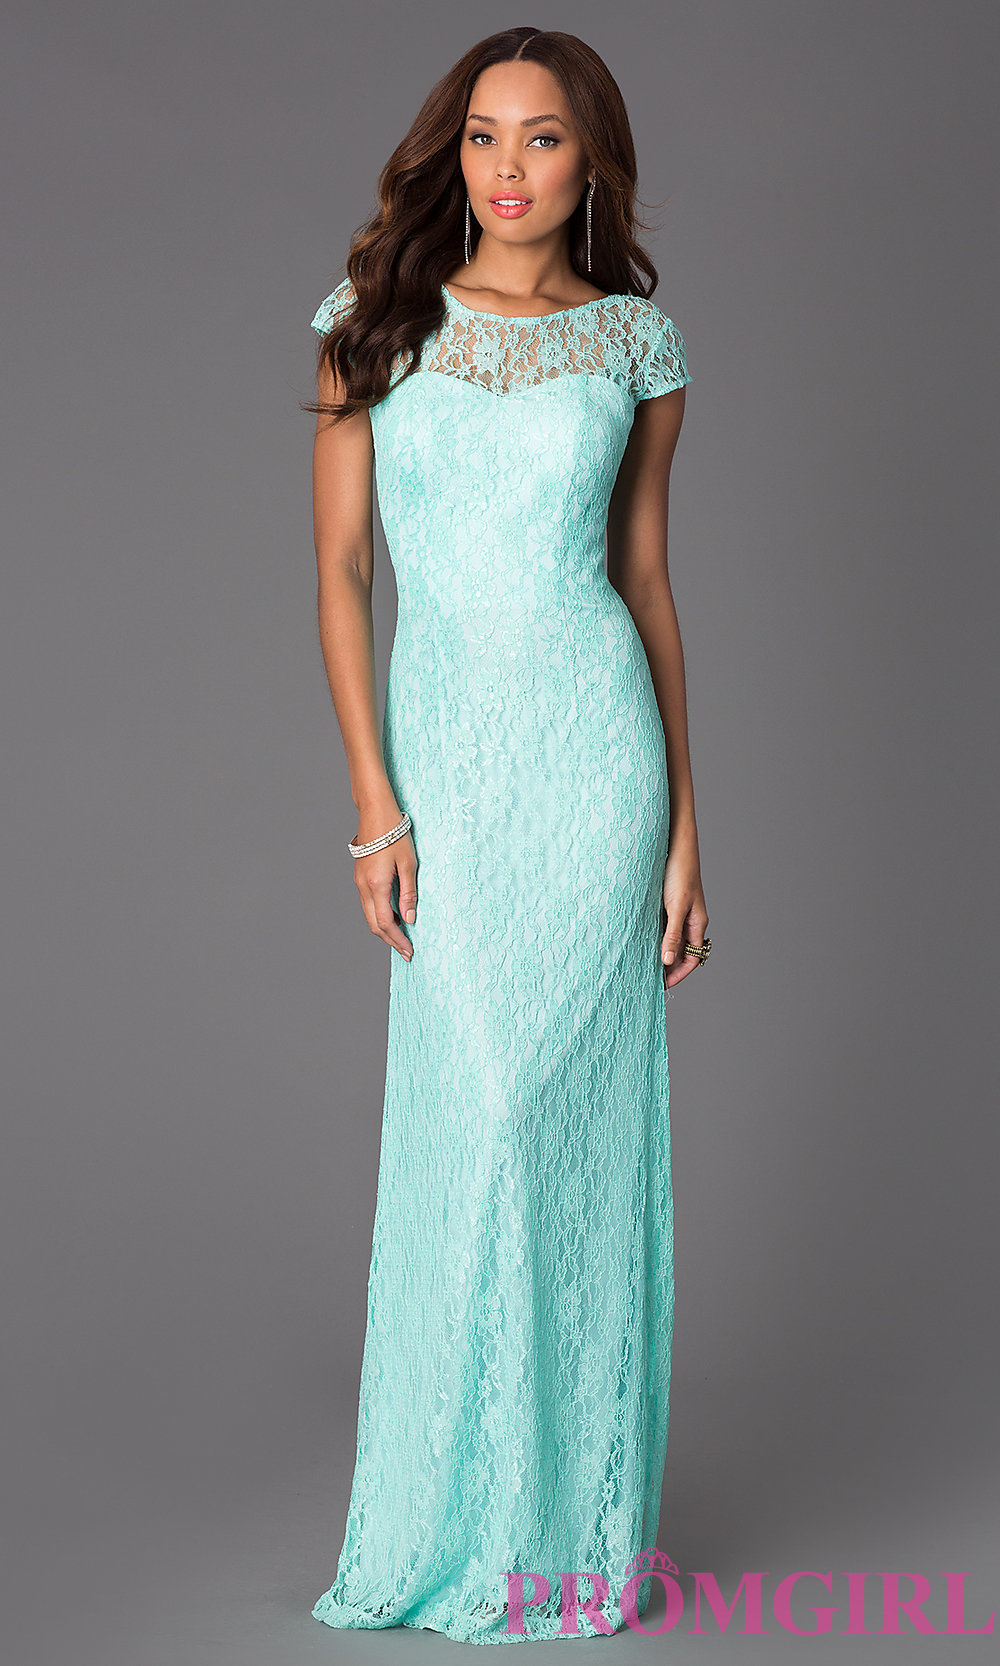 Long Dress Length - Elegant And Beautiful - Dresses Ask